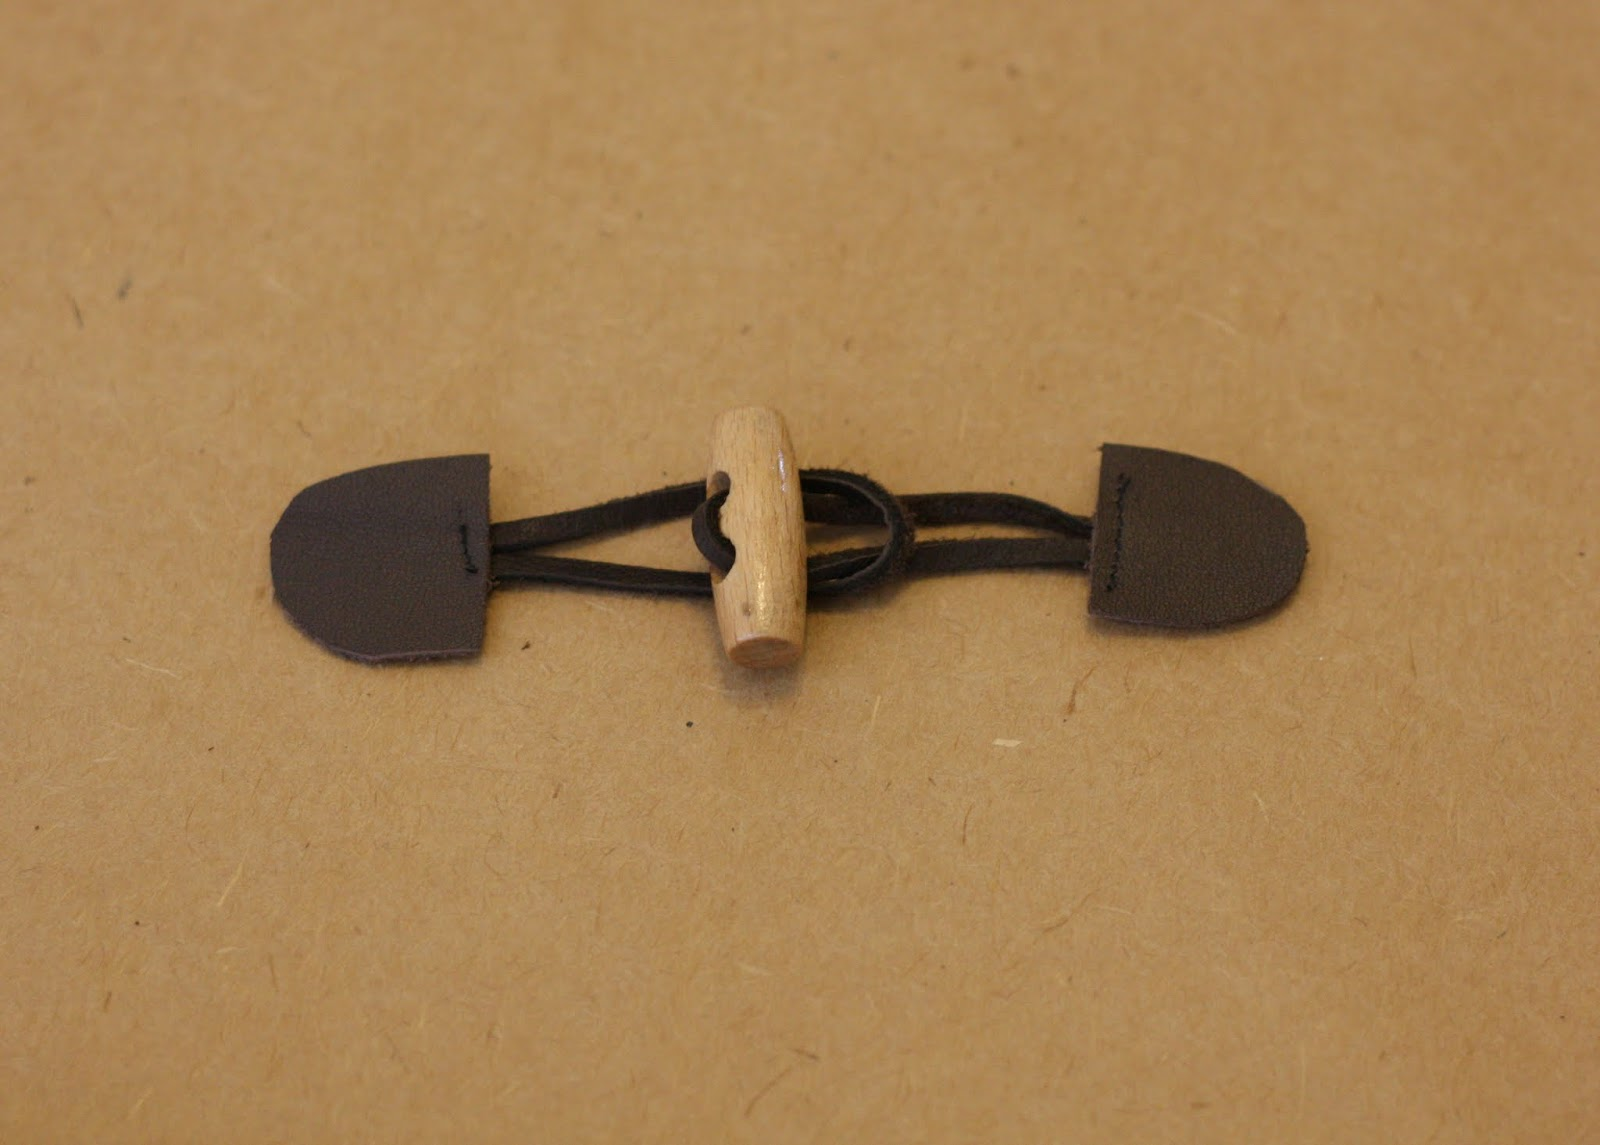 Completely new Crafting Zuzzy: How to make your own DIY toggles: a simple tutorial GB71